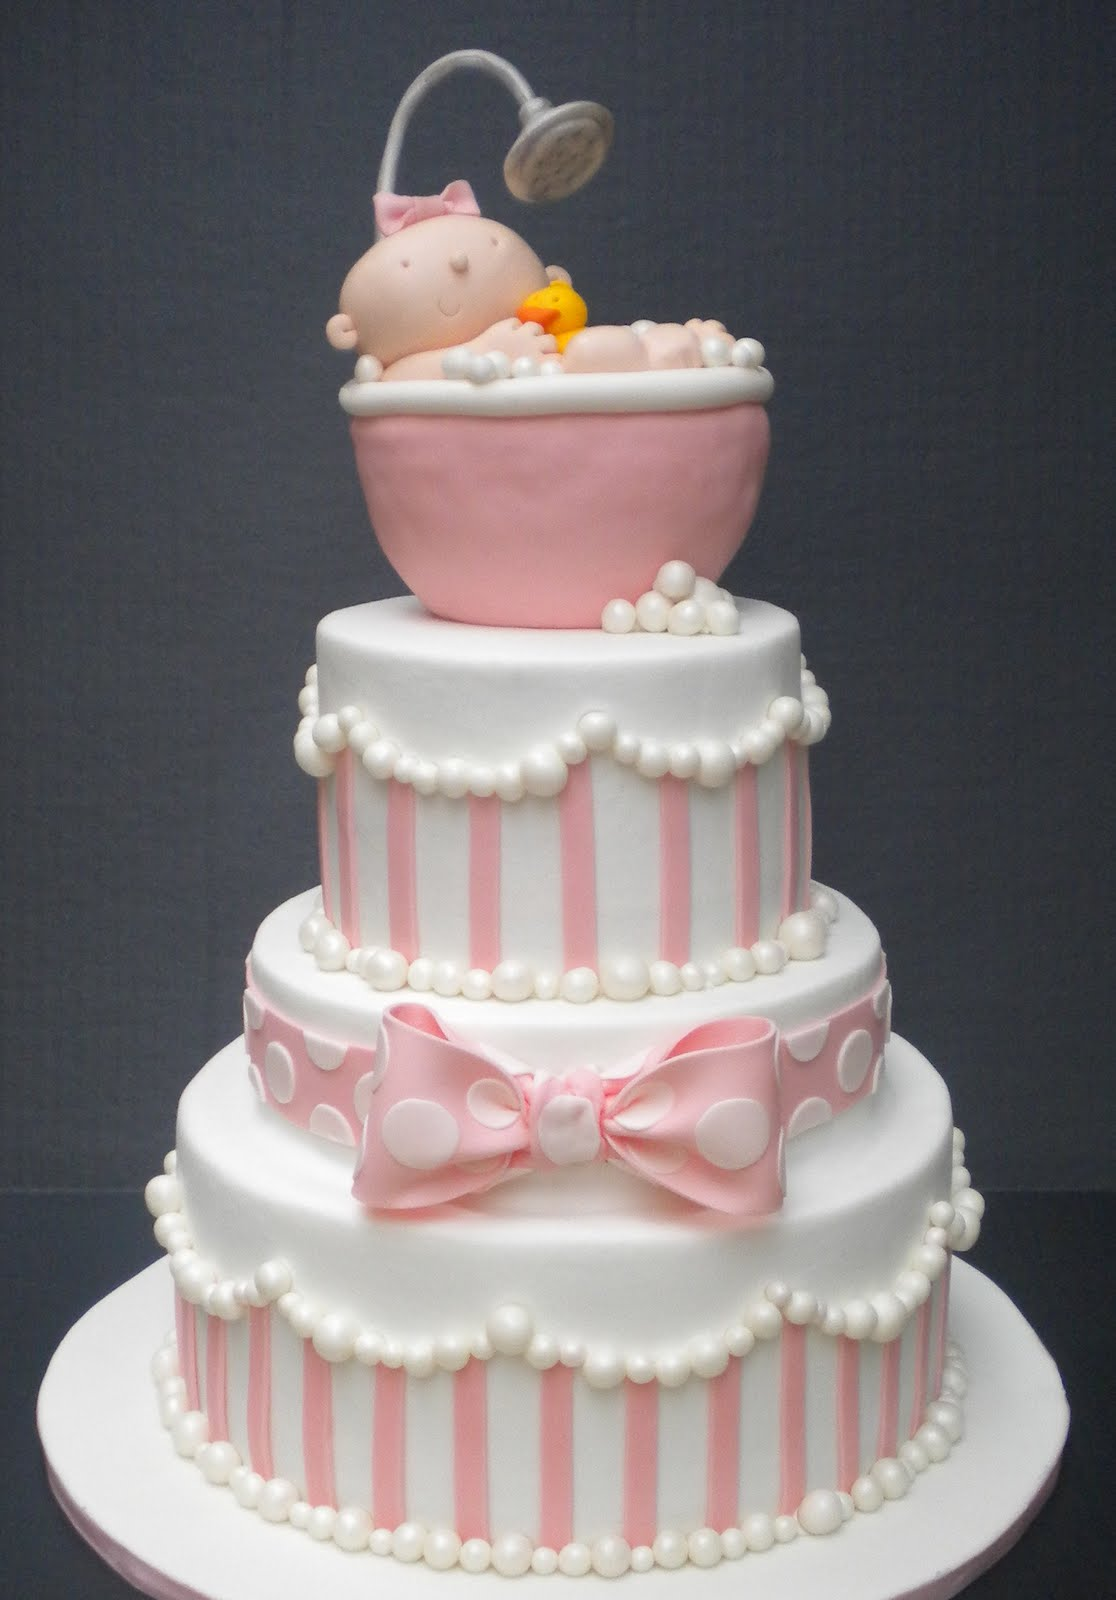 Cute Baby Cake Images : It s Written on the Wall: Fabulous Party Decorations For ...